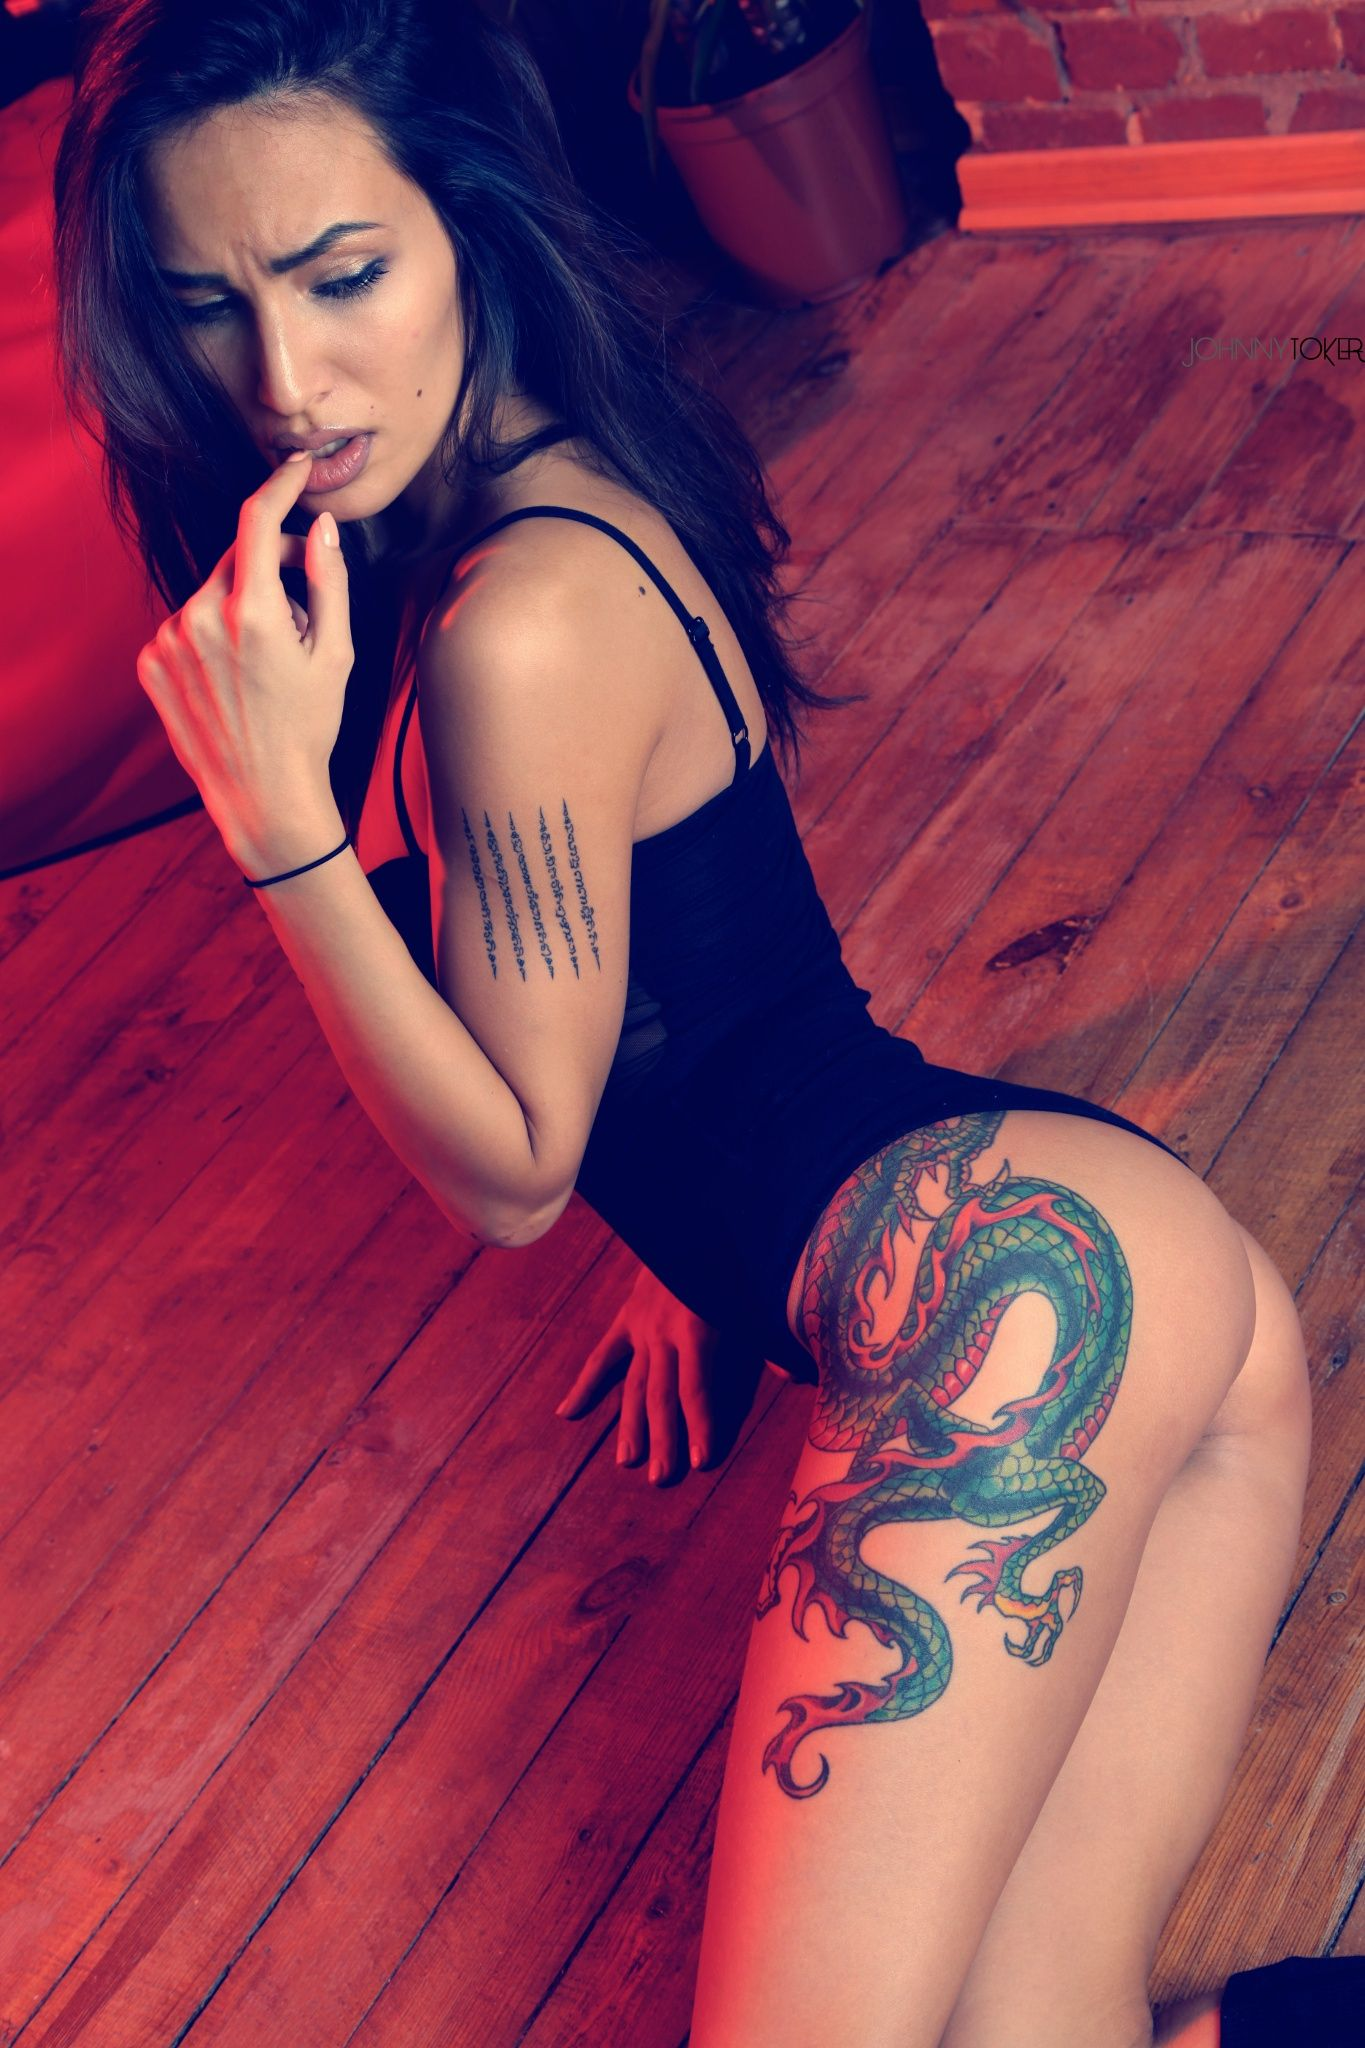 Tattoo websites for girls - Sonya Marmeladova By Johnny Toker On 500px Sexy Tattoo Girlstattooed